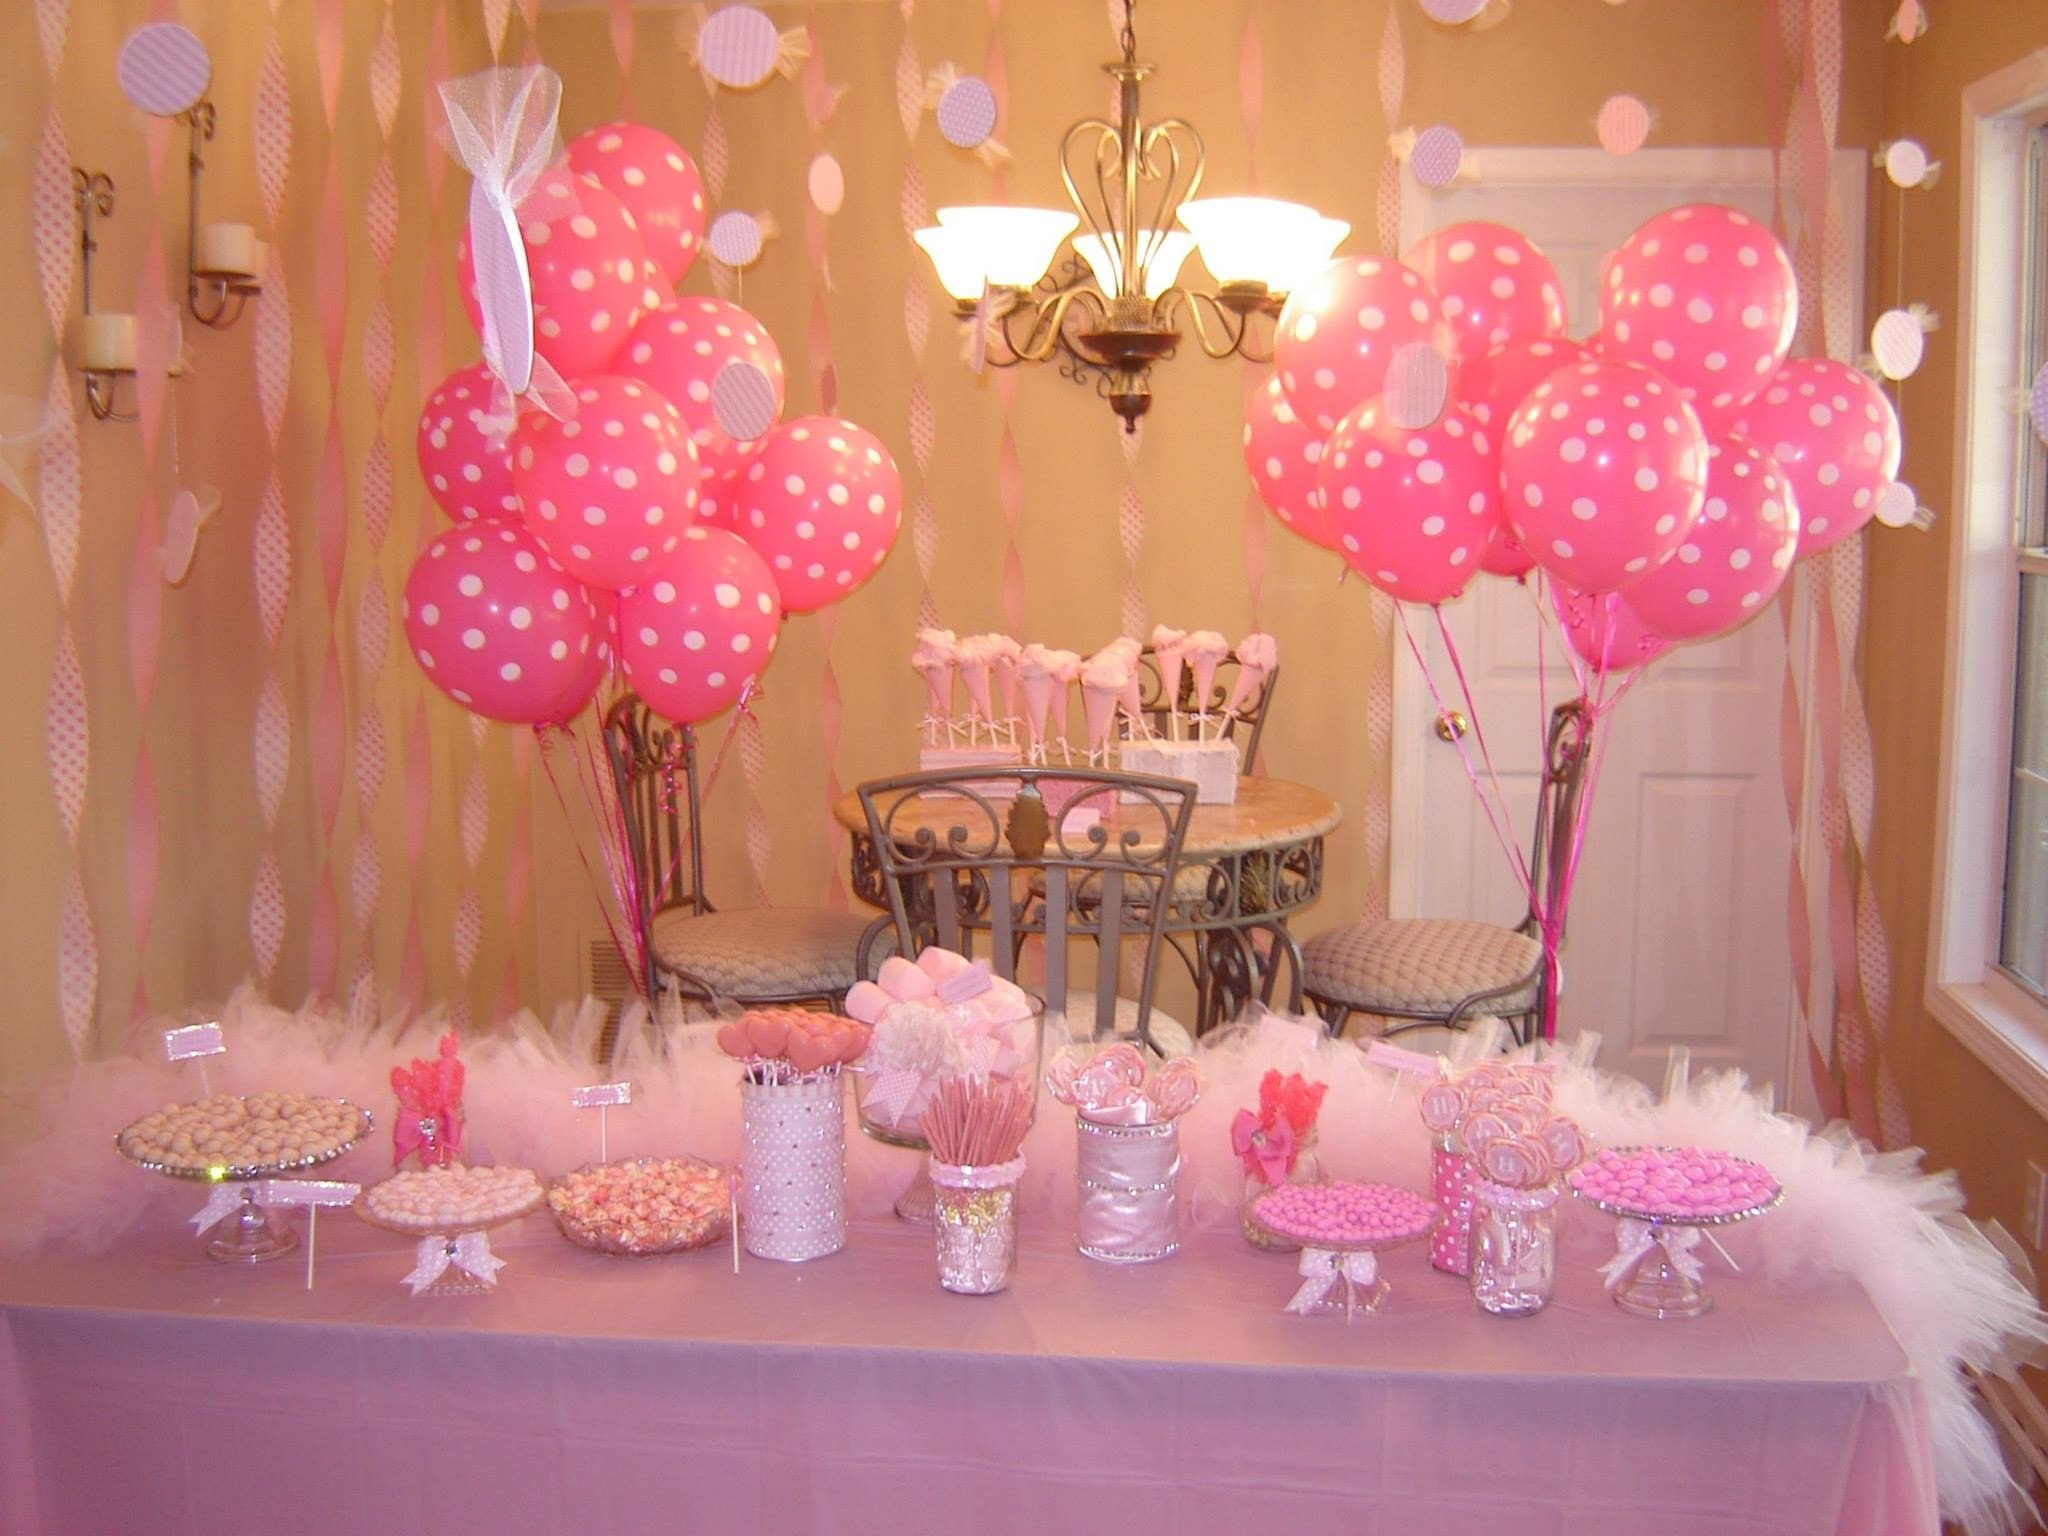 10 Stylish 1St Birthday Party Decoration Ideas 16 creative ideas for hosting party in small spaces birthdays